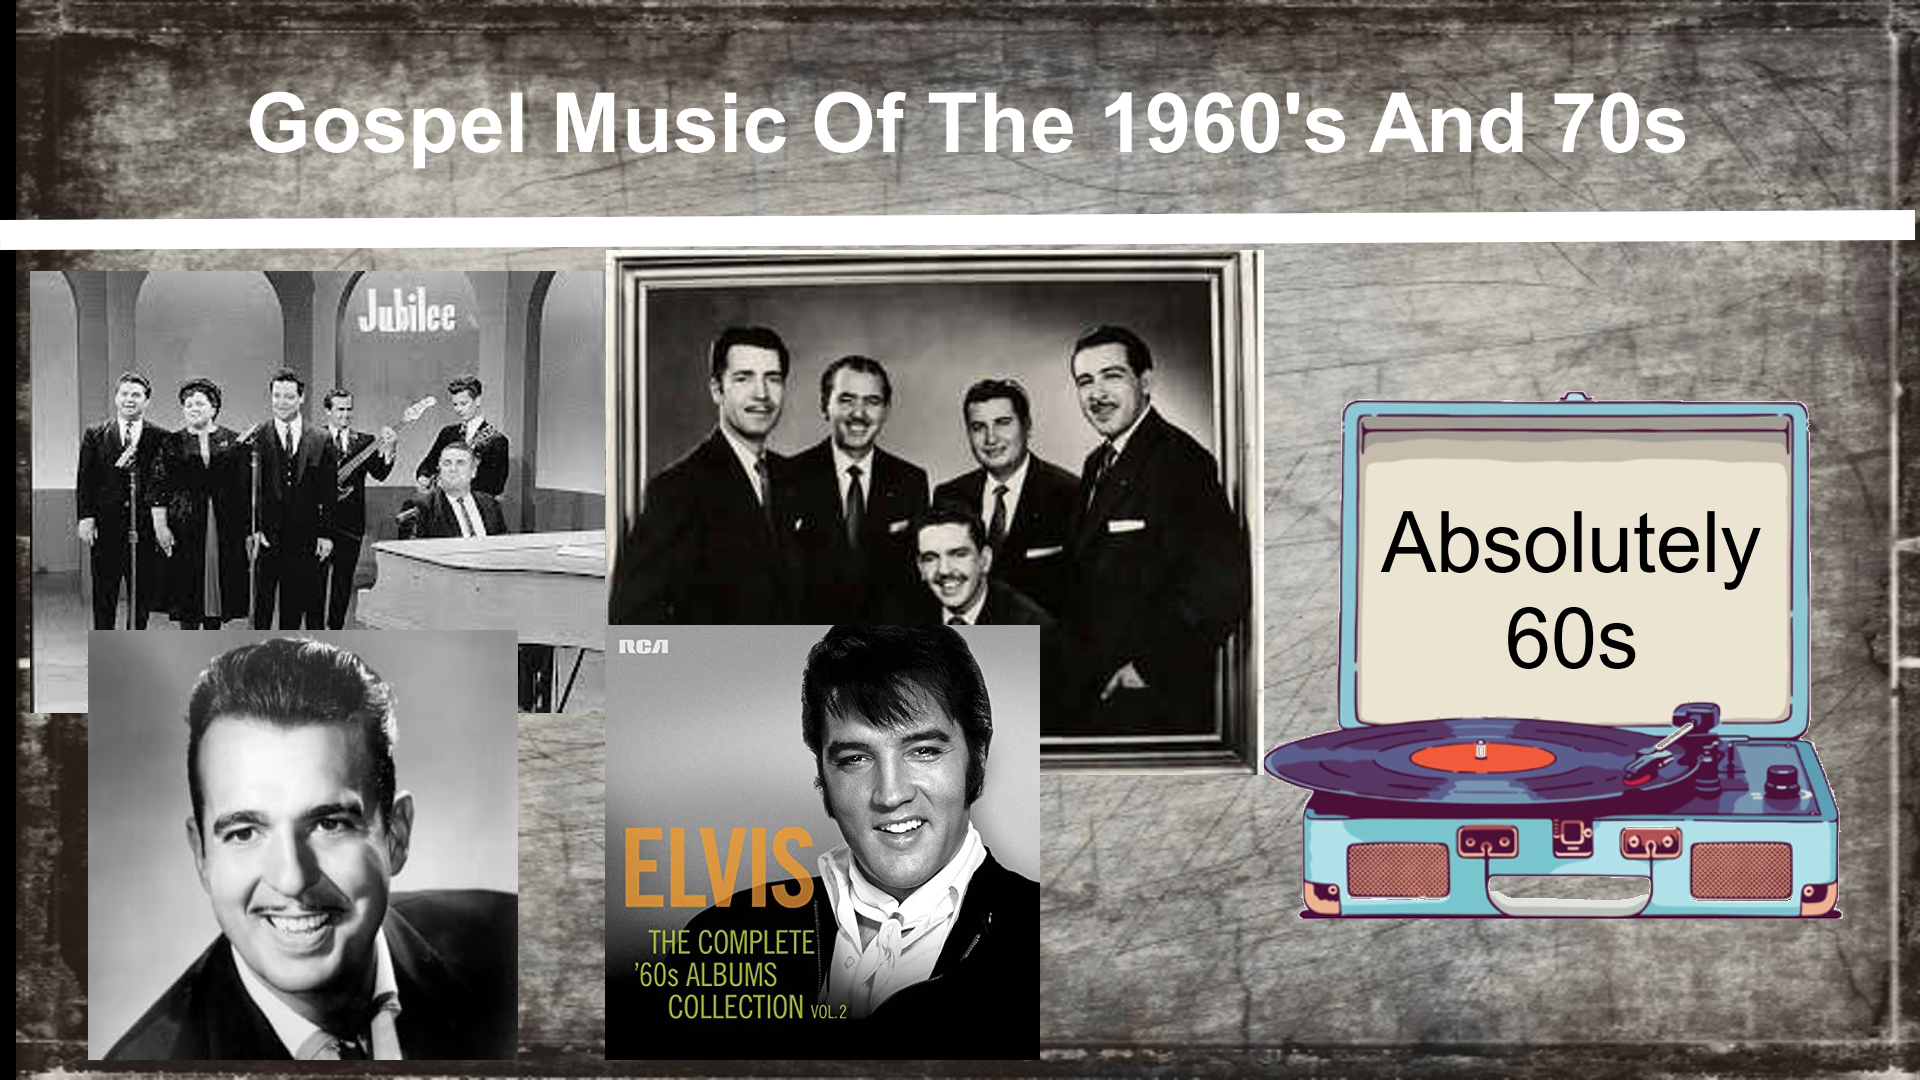 Gospel Music Of The 1960's and 70's